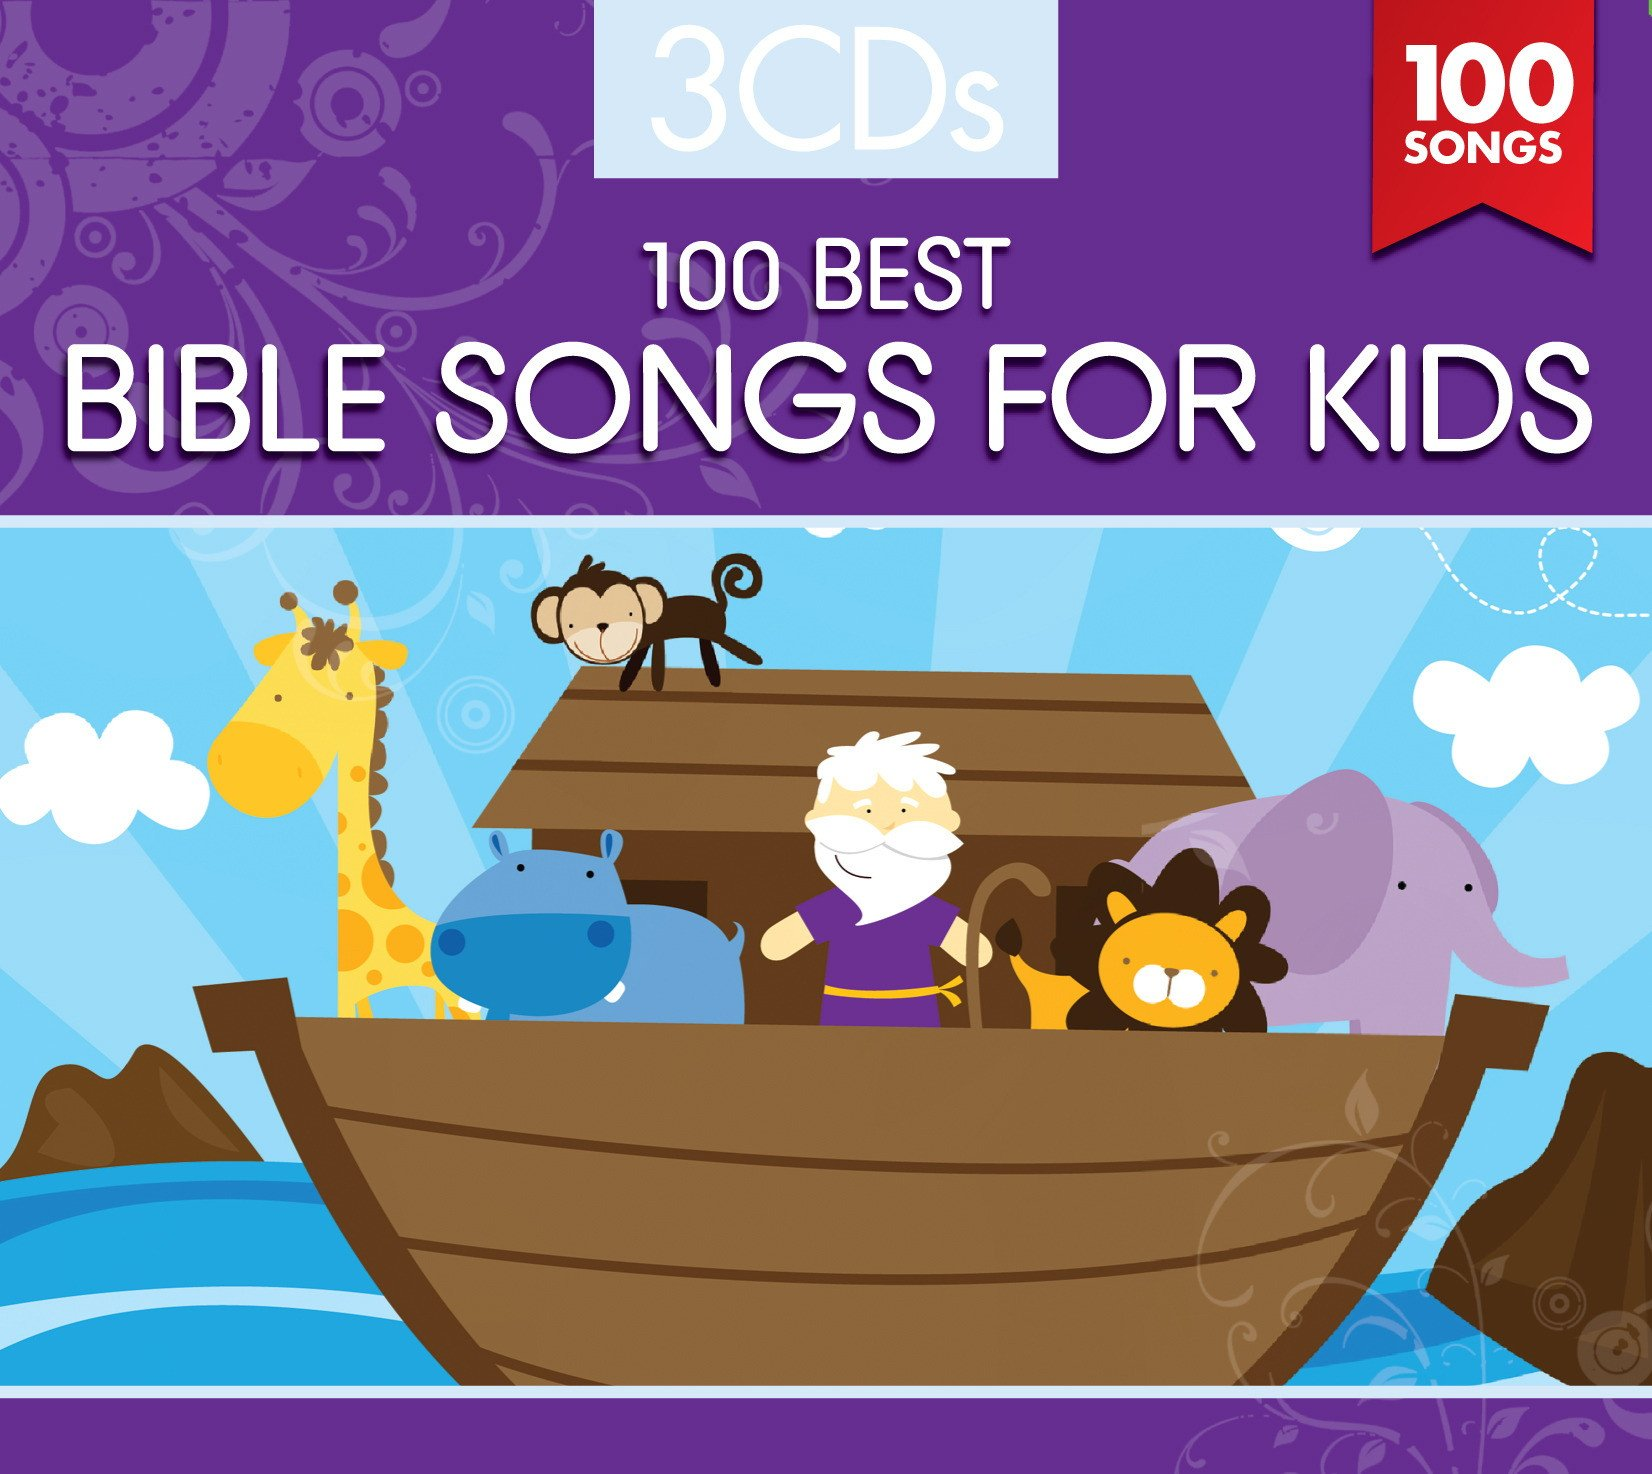 100 BEST BIBLE SONGS FOR KIDS (3 CD Set) by Capitol Christian Distribution (Image #1)